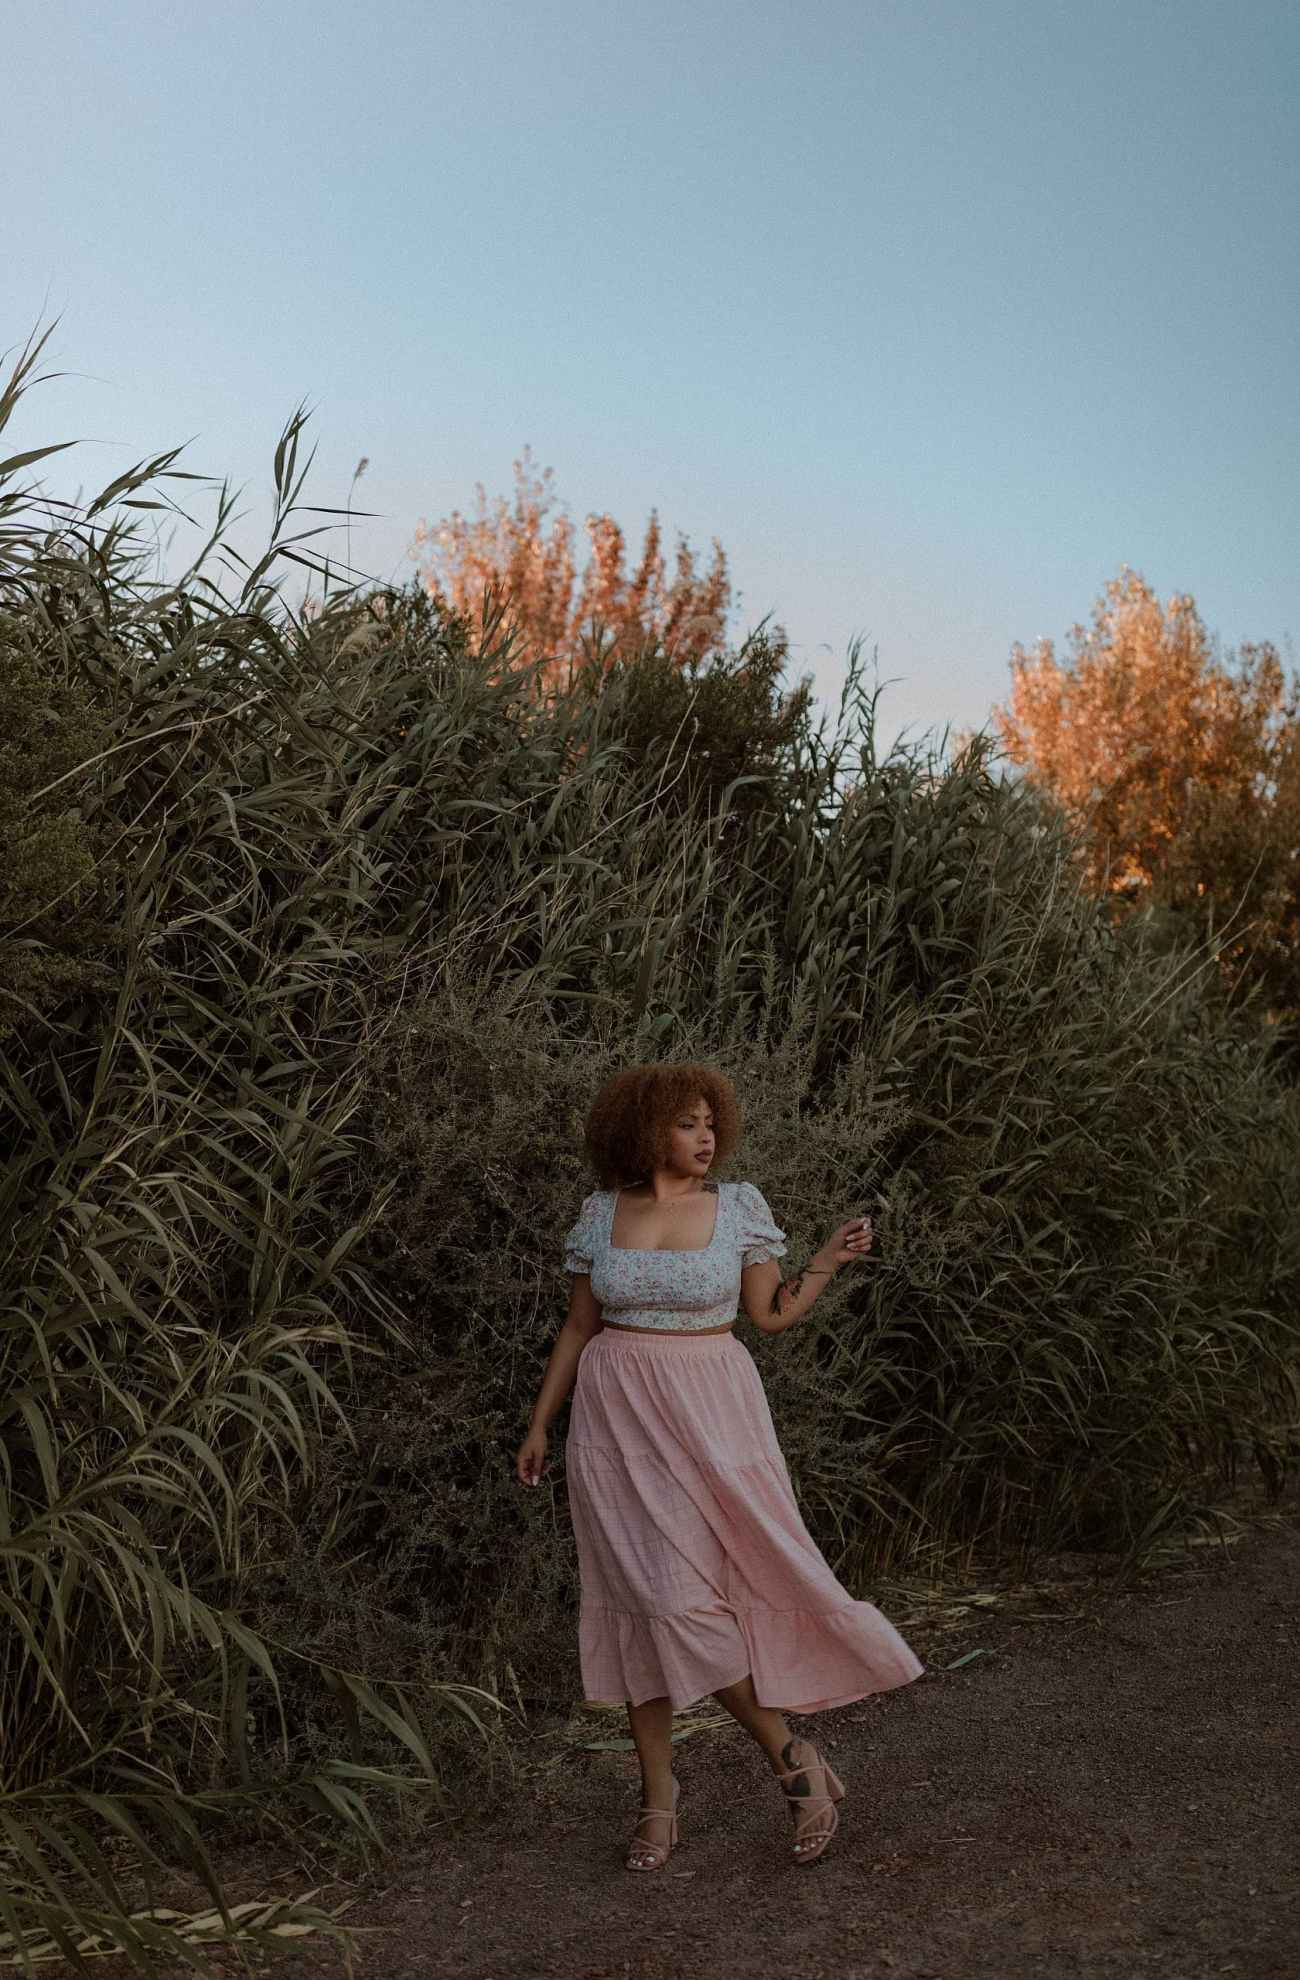 Moody portrait session at sunset at Las Vegas Wetlands